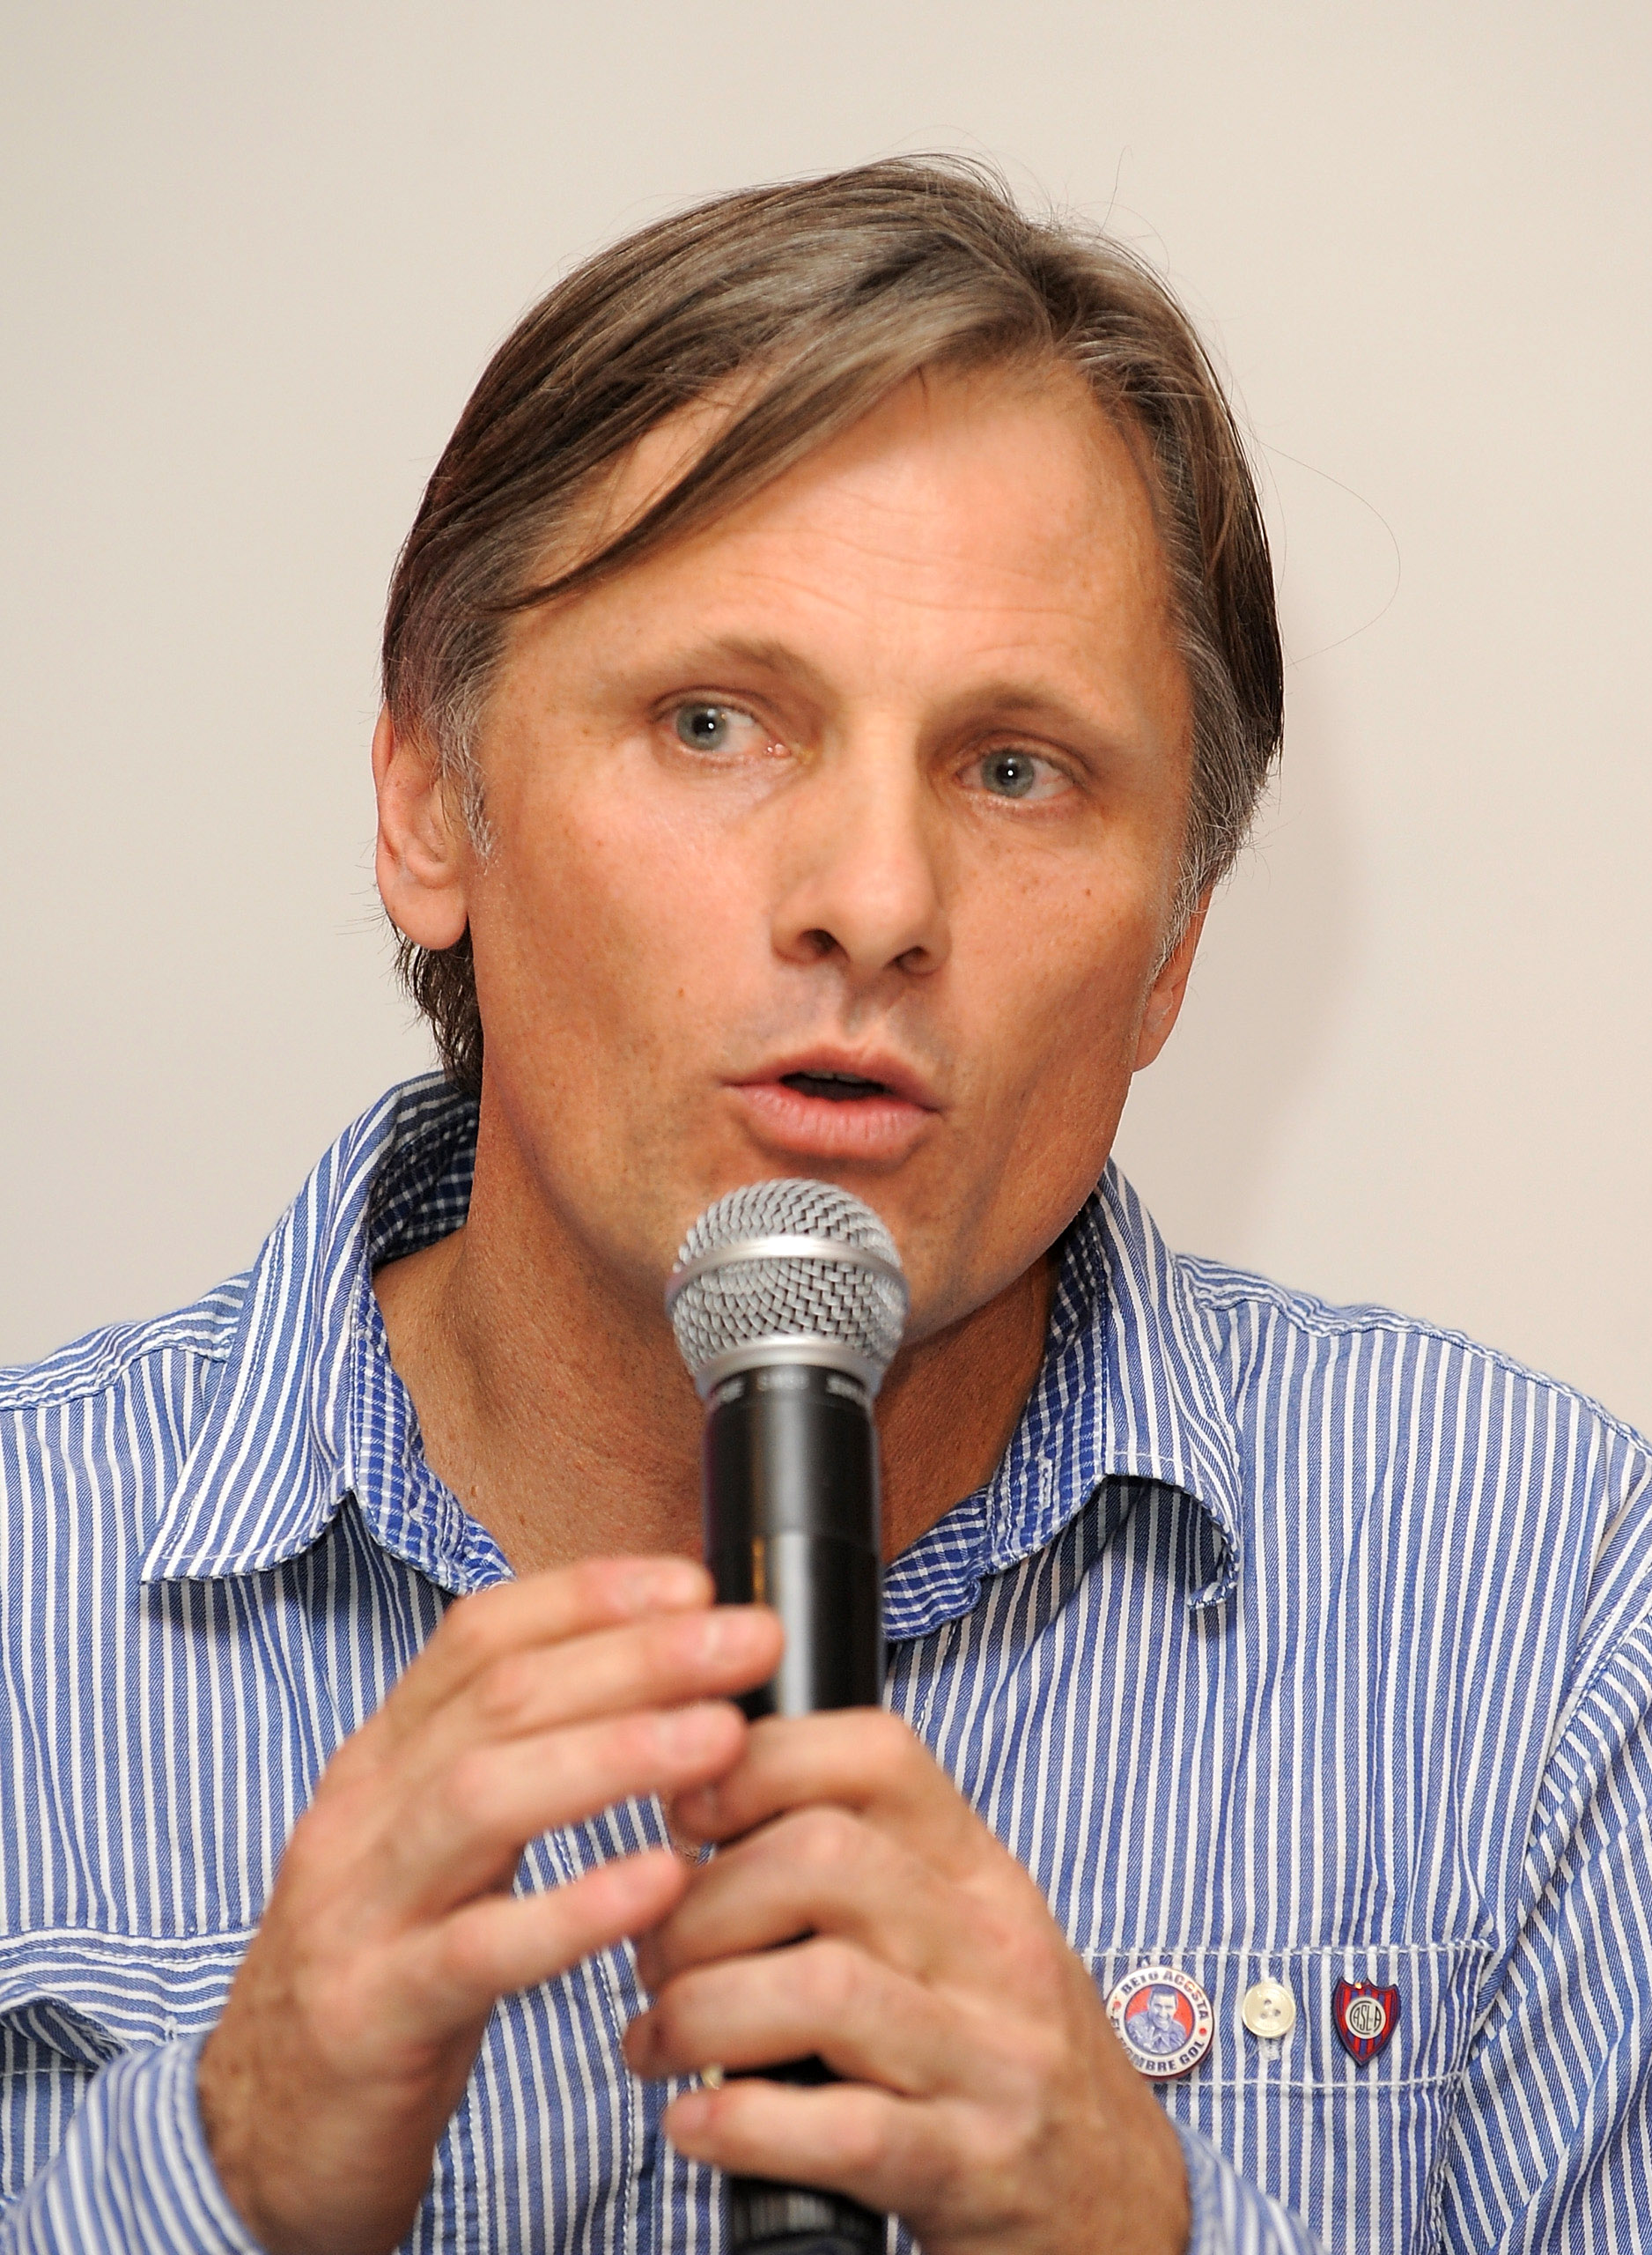 Viggo at poetry reading in Argentina